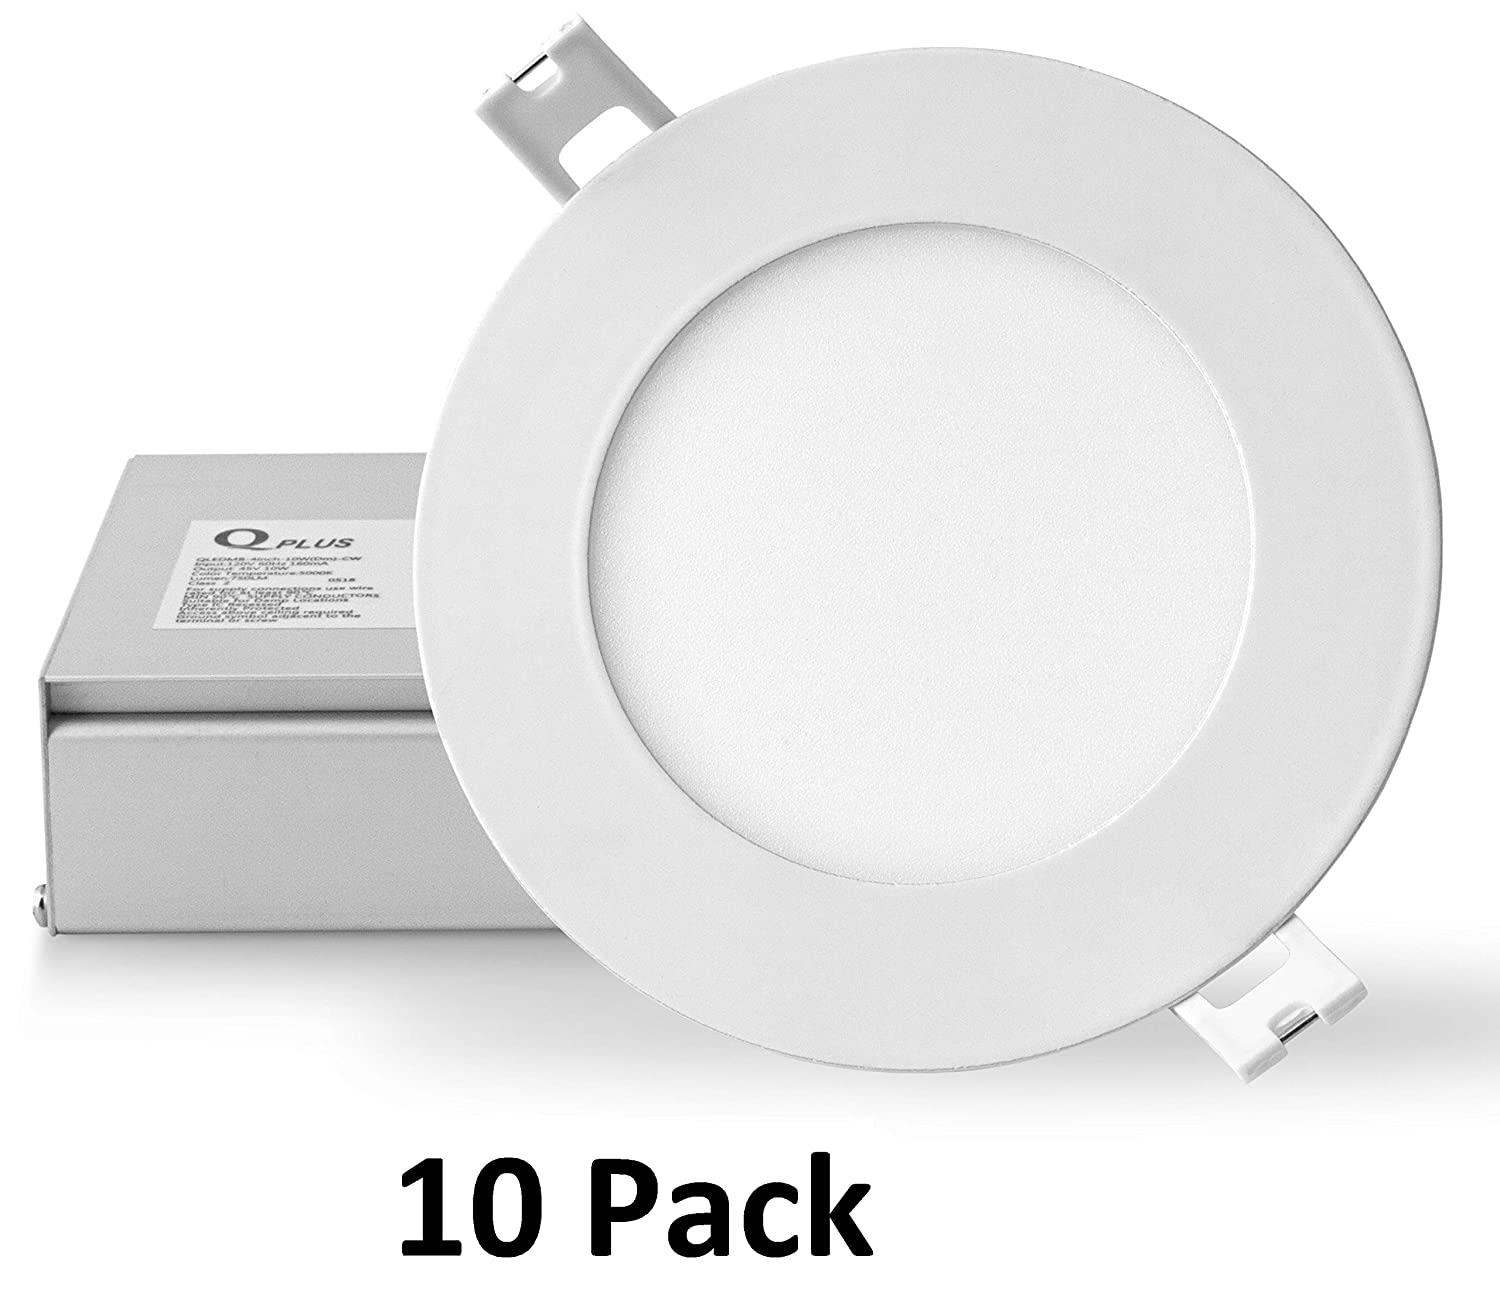 Qplus 4 inch slim recessed led pot light 3000k warm white 10 pack 10w 75w dimmable ic rated cetlus energy star rated ultra thin down